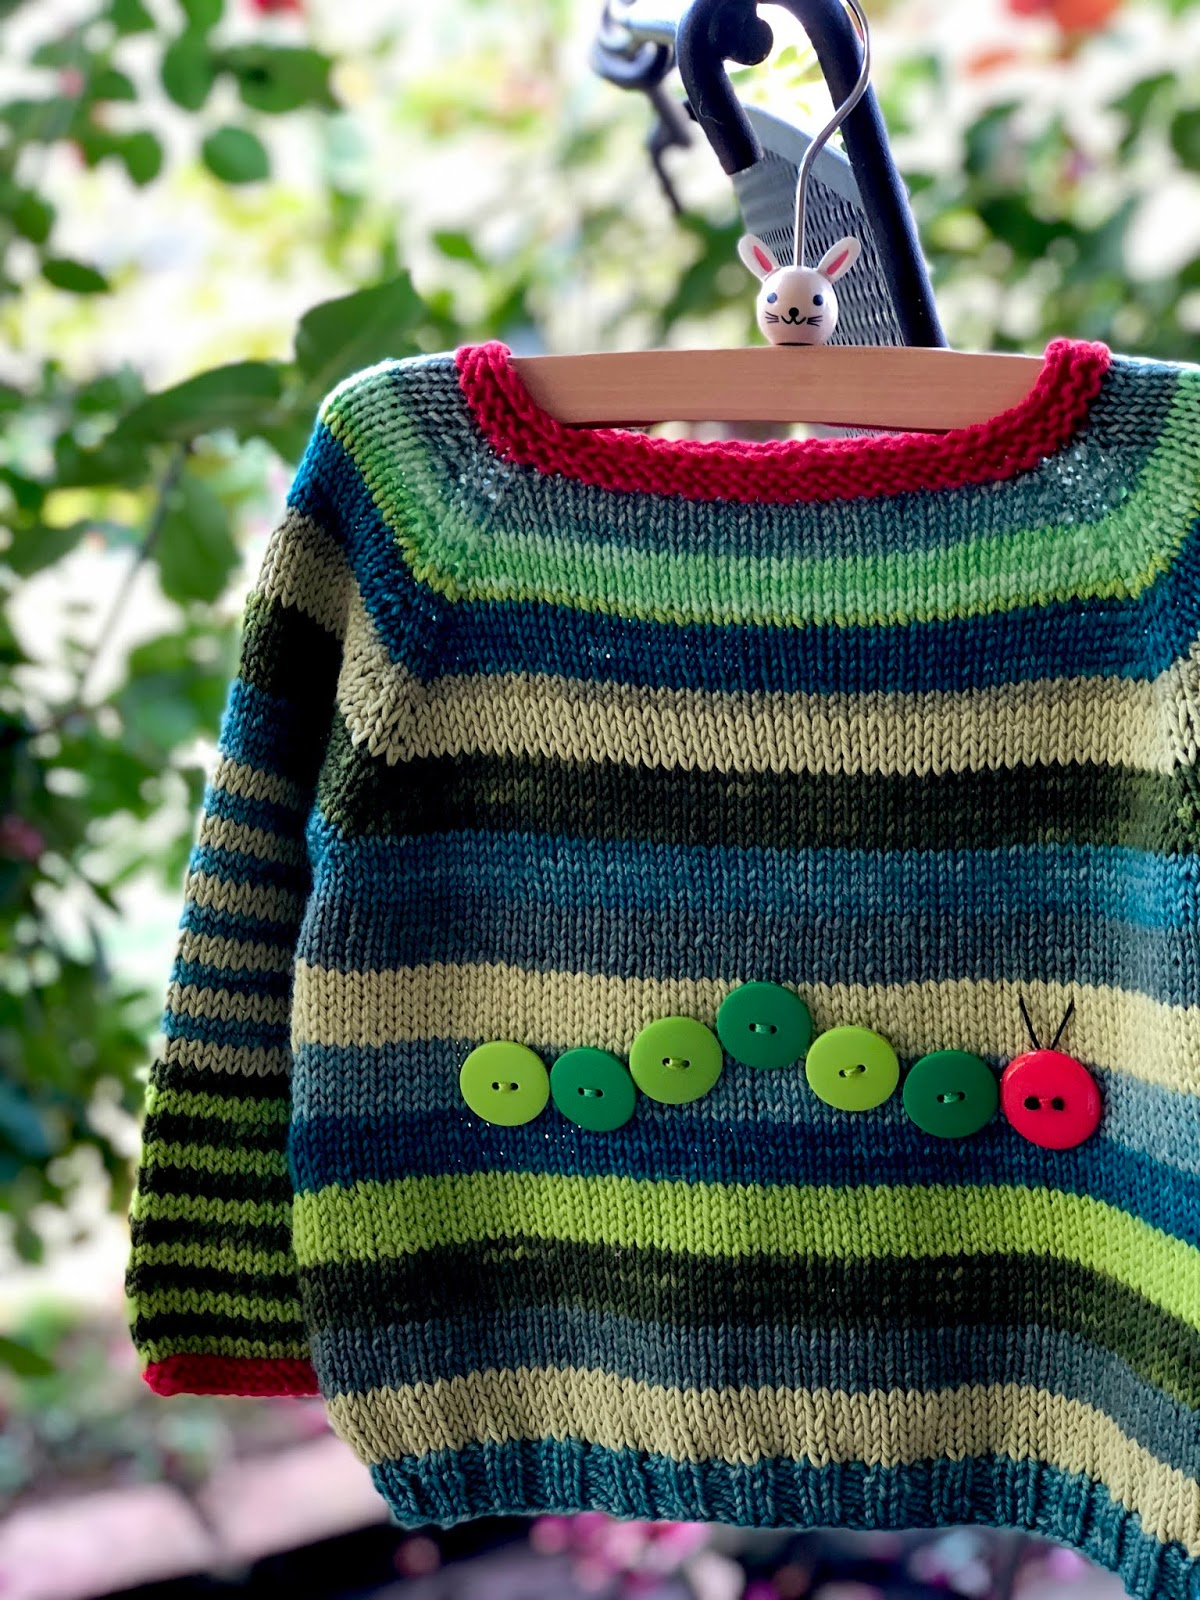 The Very Hungry Caterpillar sweater - Knitionary